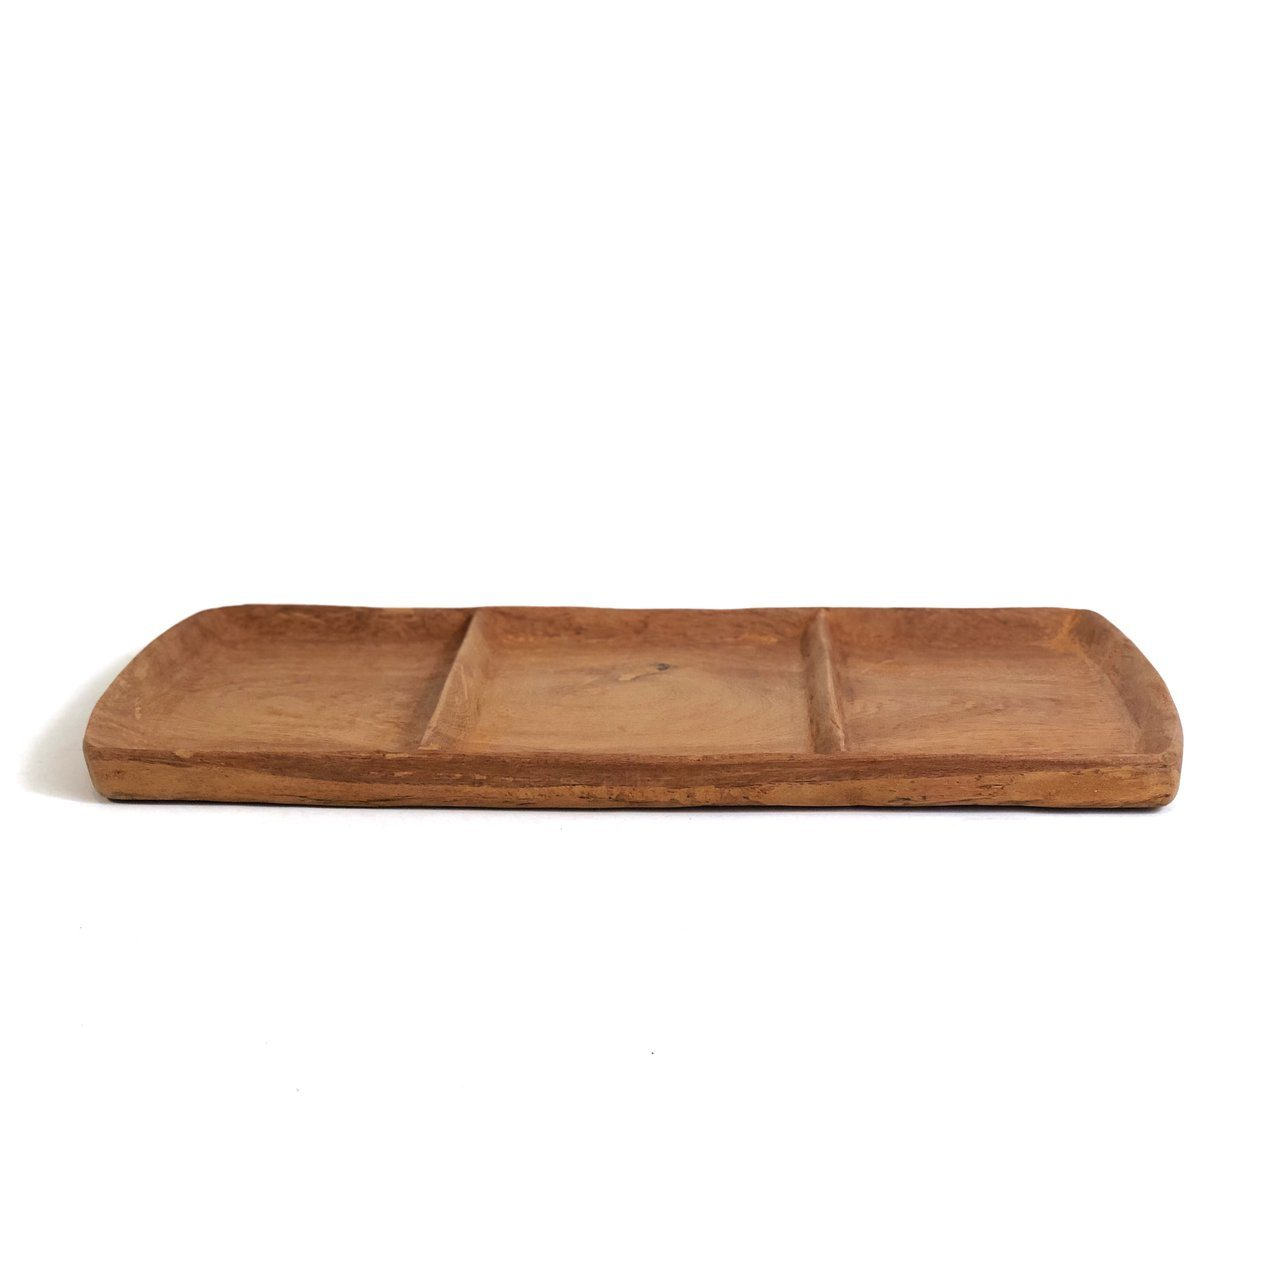 Mbare Teak 3 Part Serving Platter Home Goods Mbare